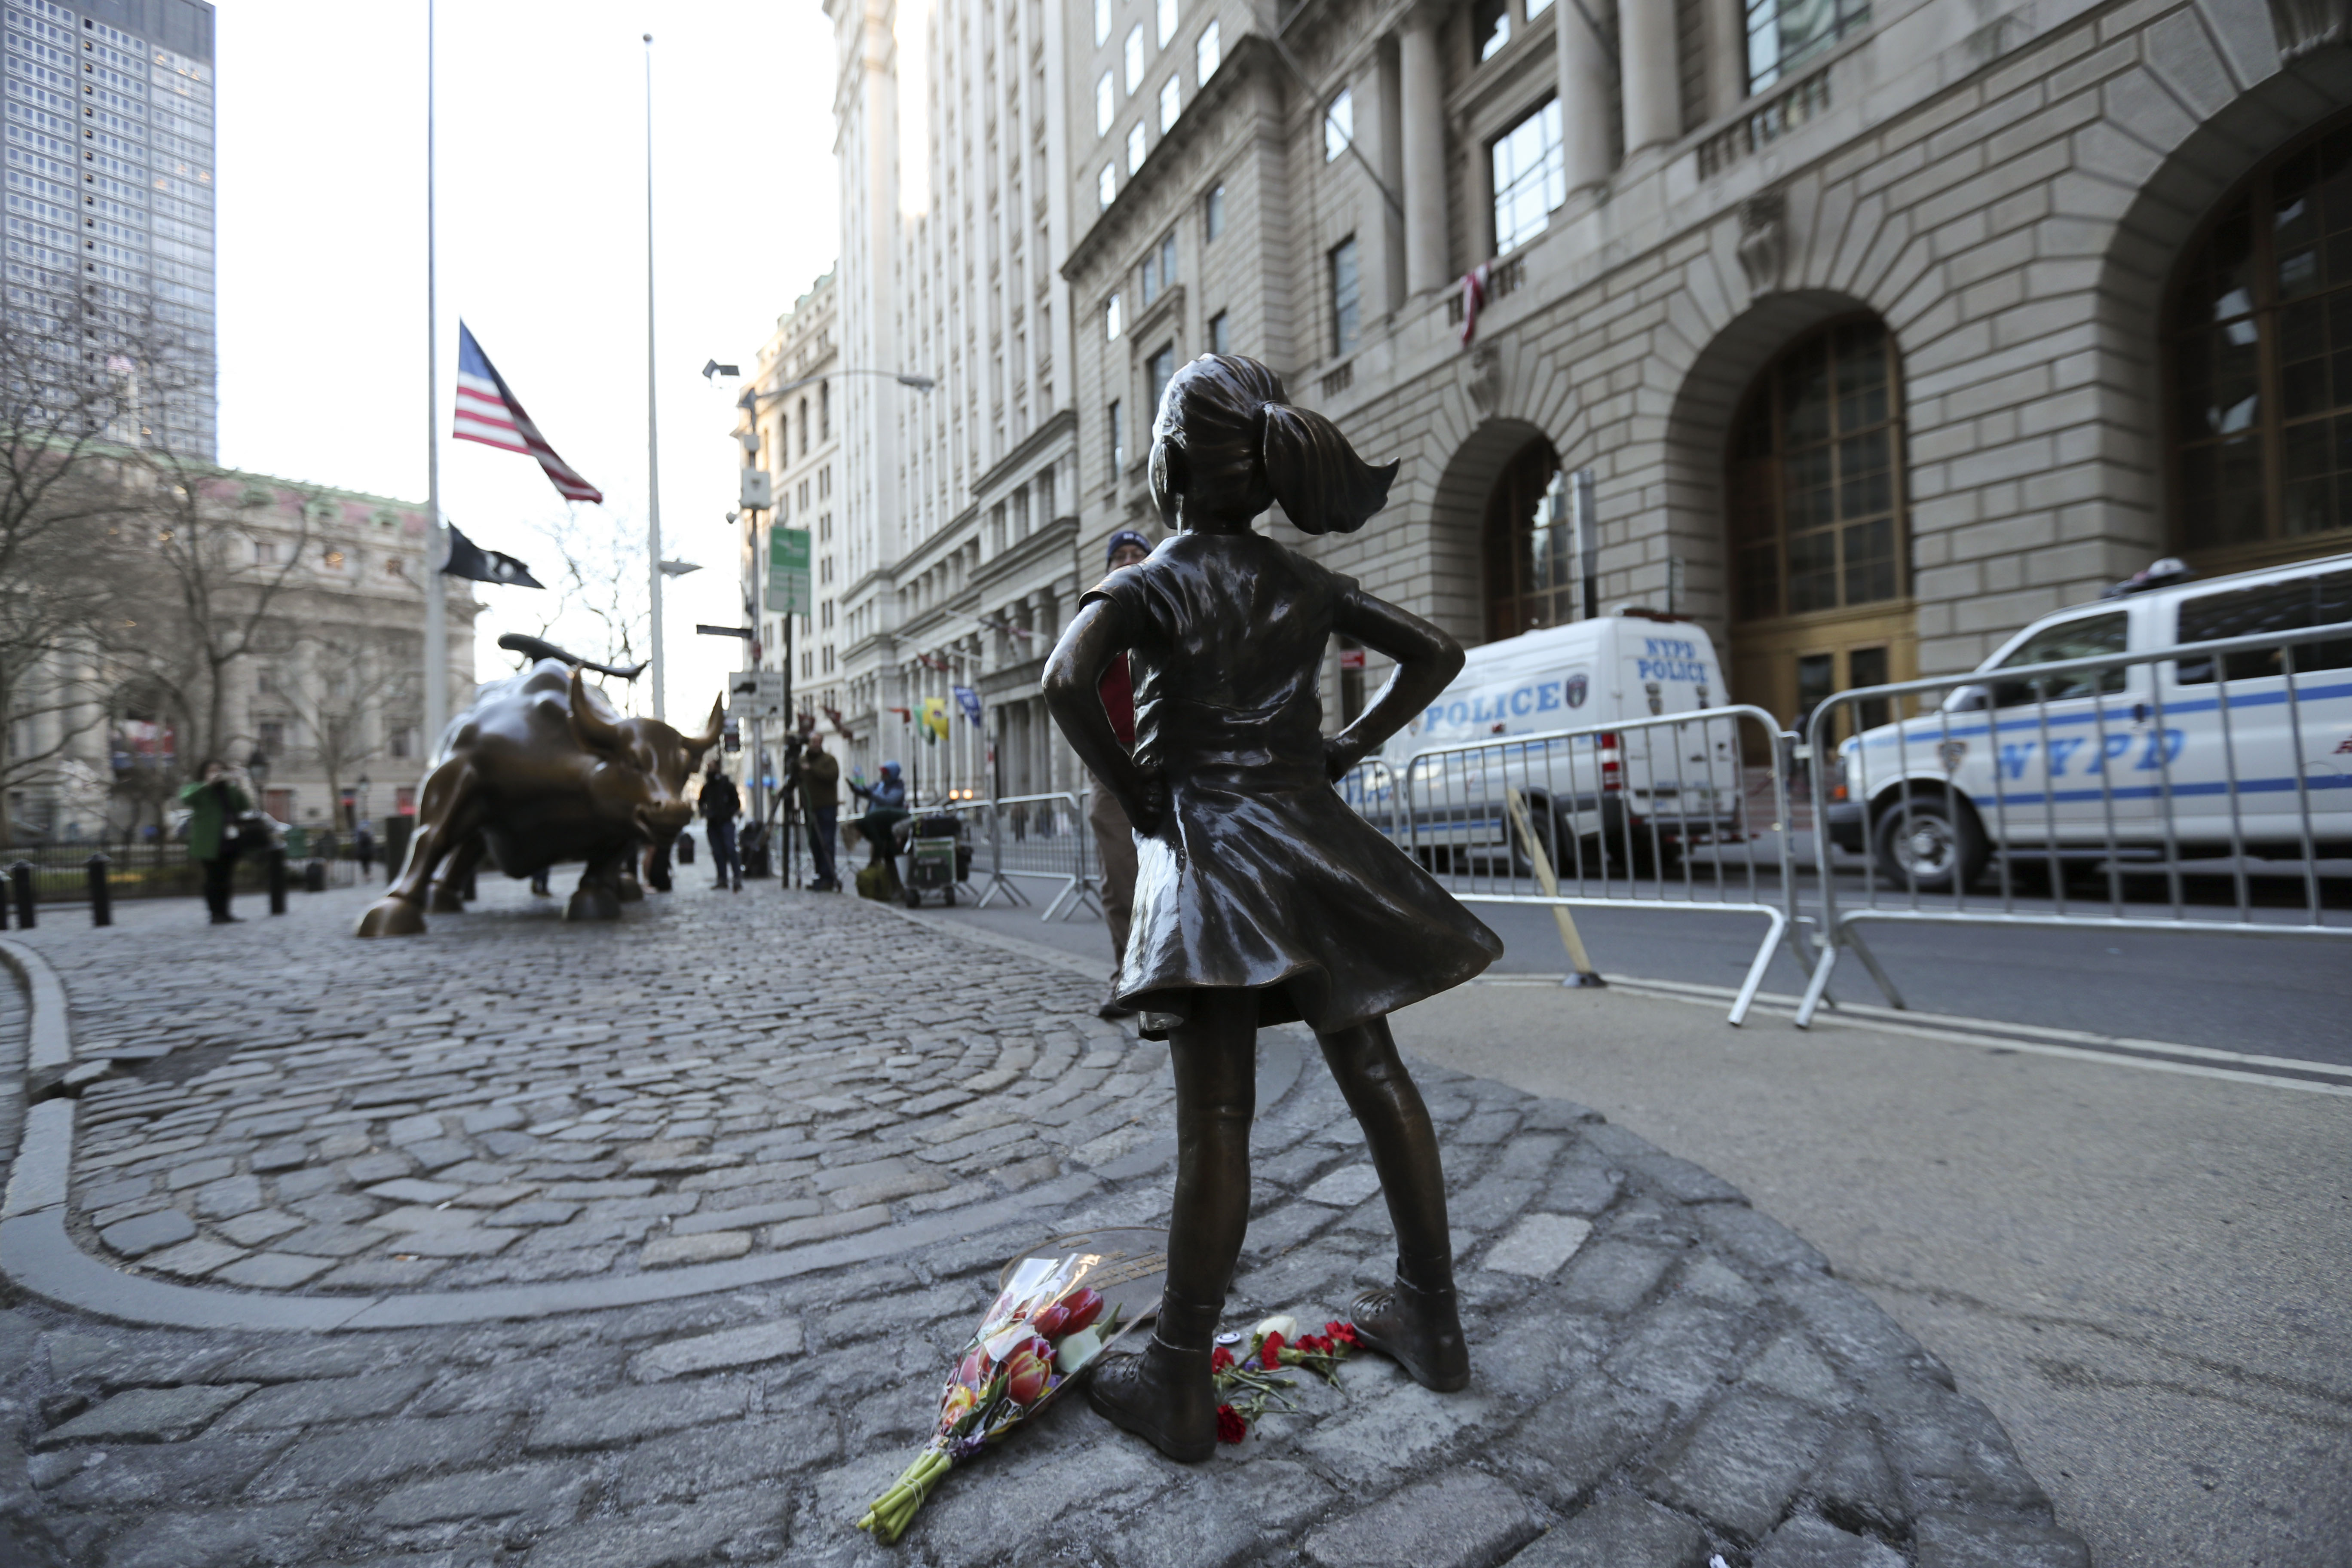 NEW YORK, March 9, 2017 :   Photo taken on March 9, 2017 shows the  fearless girl  statue facing the bronze bull statue near the Wall Street in New York, the United States. The  fearless girl  was put there by an investment firm which said the idea was to call attention to the lack of gender diversity in management of companies as well as how few women work in financial services, and the fact that they get paid less than men. (Xinhua/Wang Ying via Getty Images)